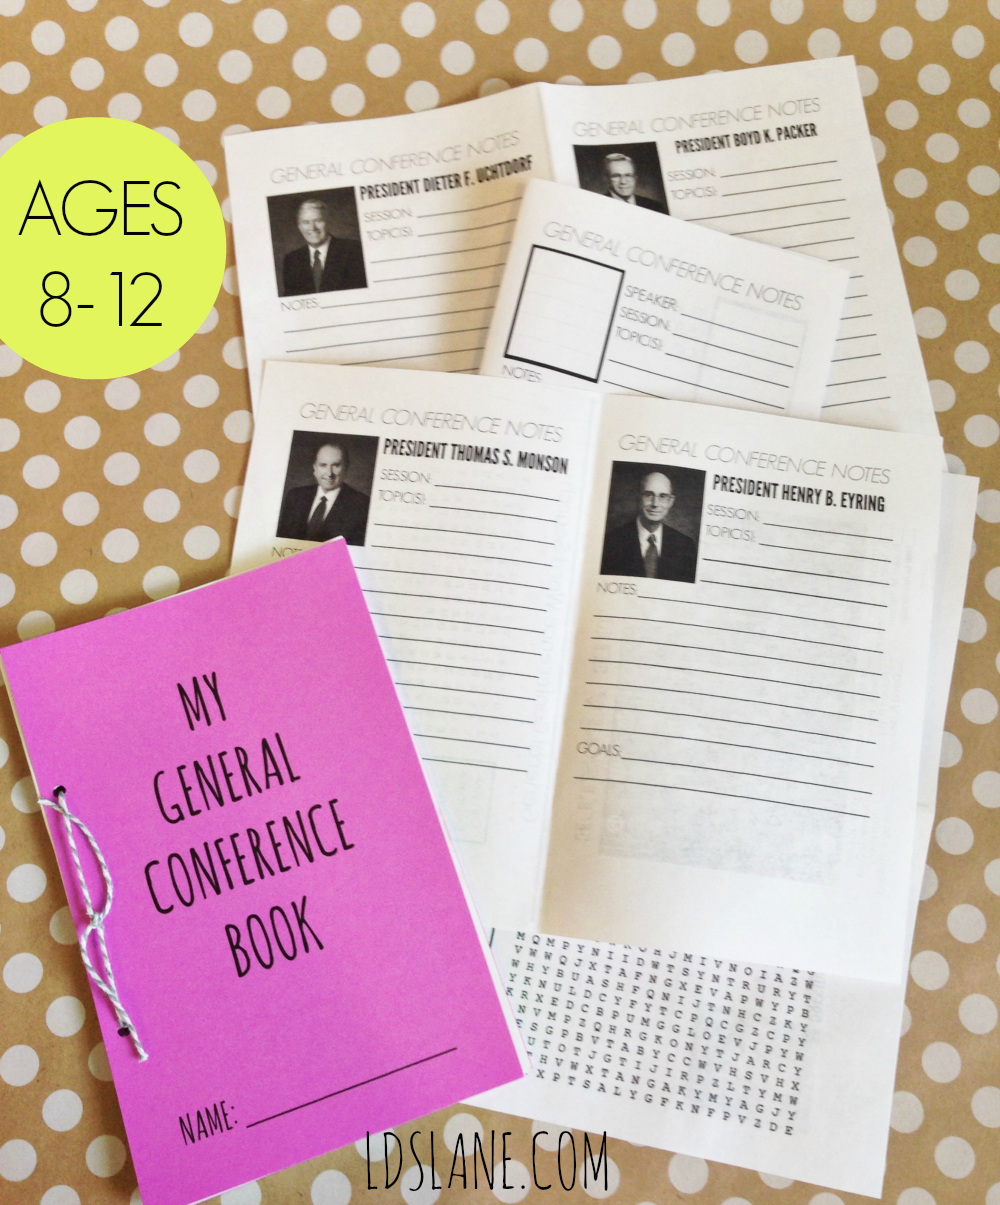 General Conference Mini Book Download by ldslane.com - Older Children Version